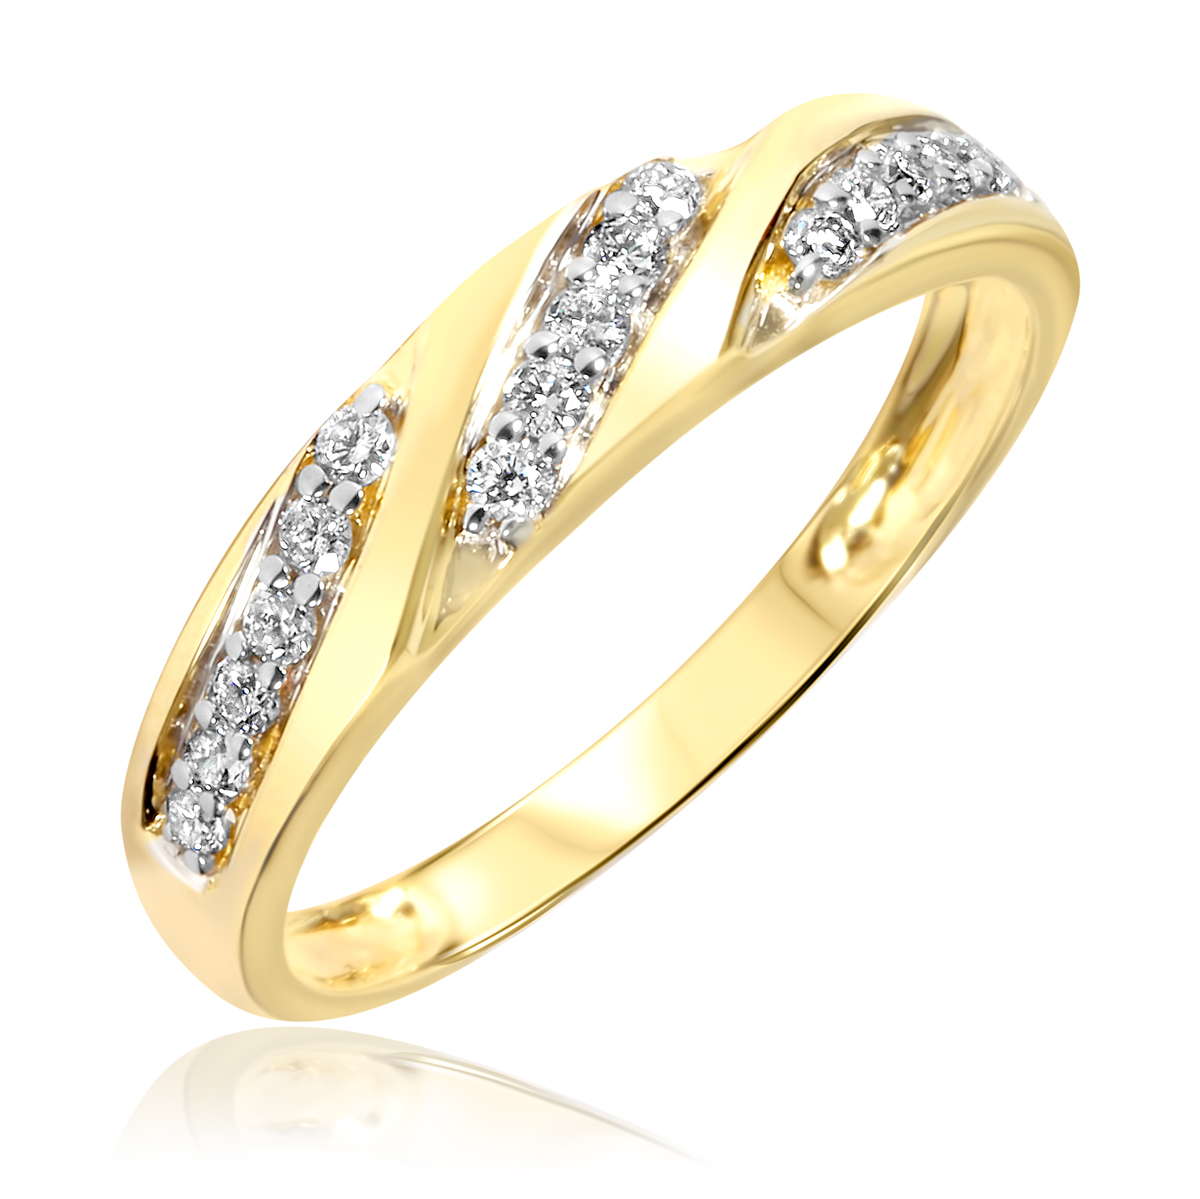 women 39 s wedding ring 14k yellow gold my trio rings bt168y14kl